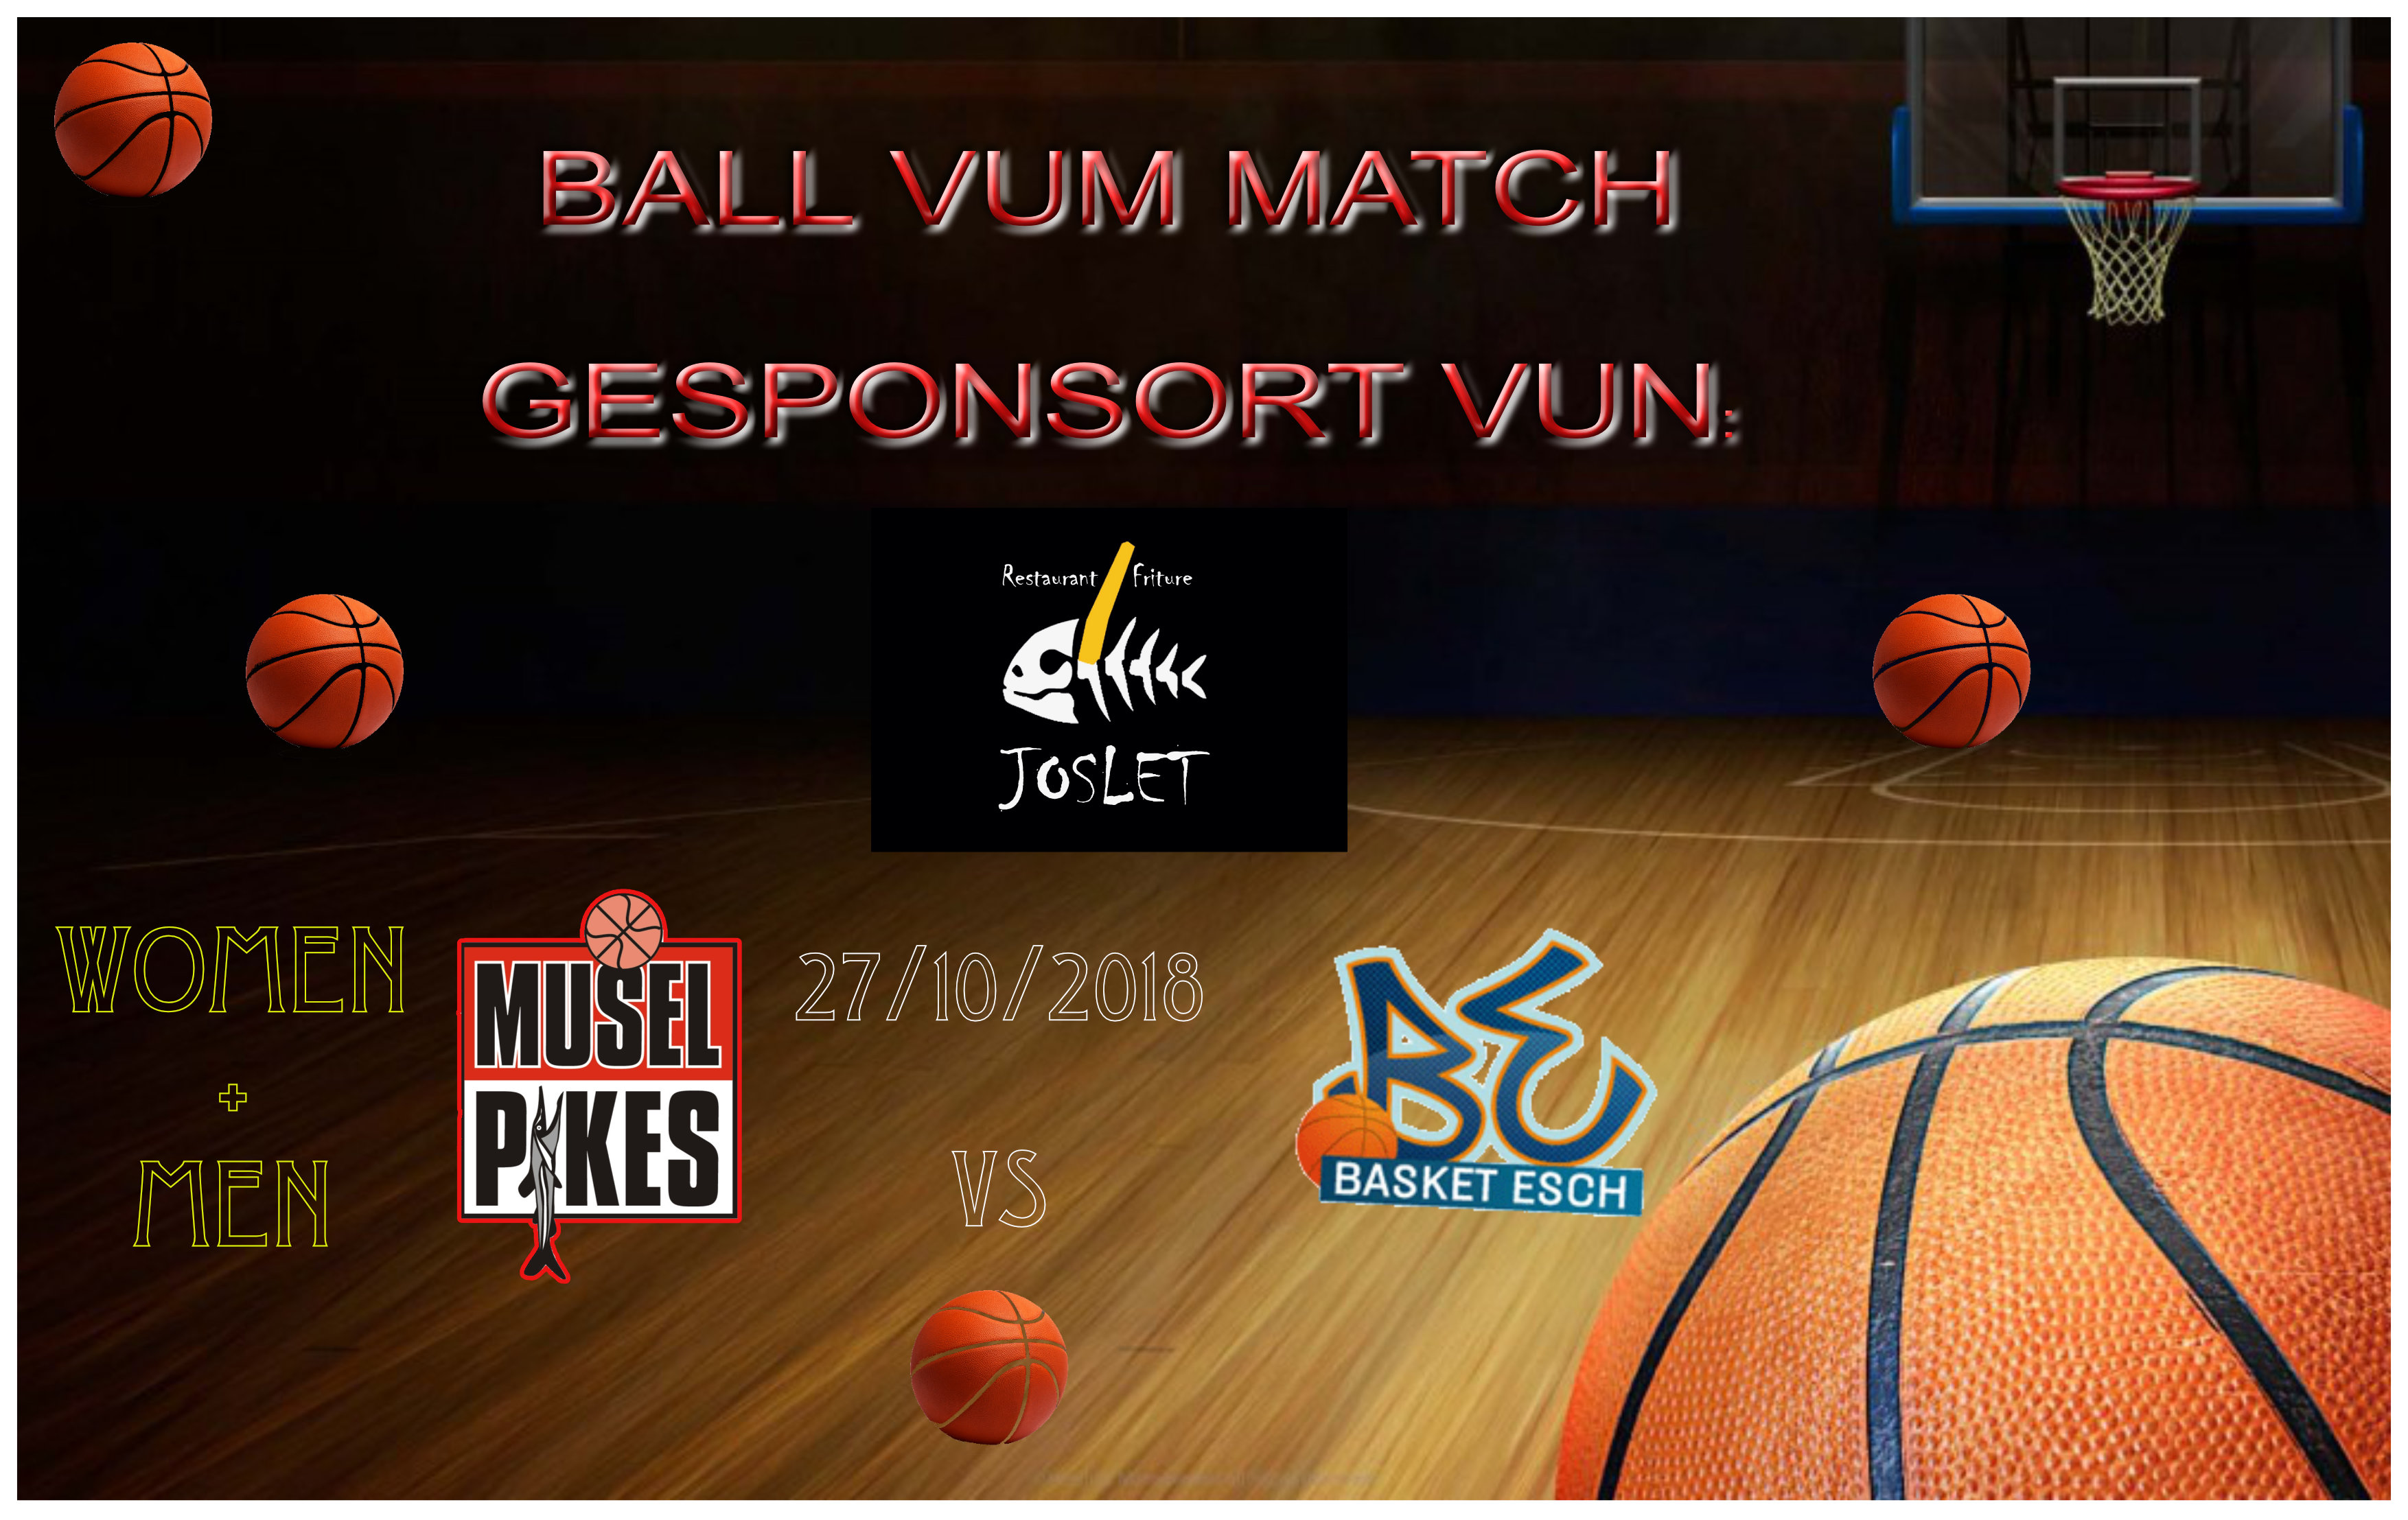 FRITURE JOSLET = Sponsor vum Ball vum Match